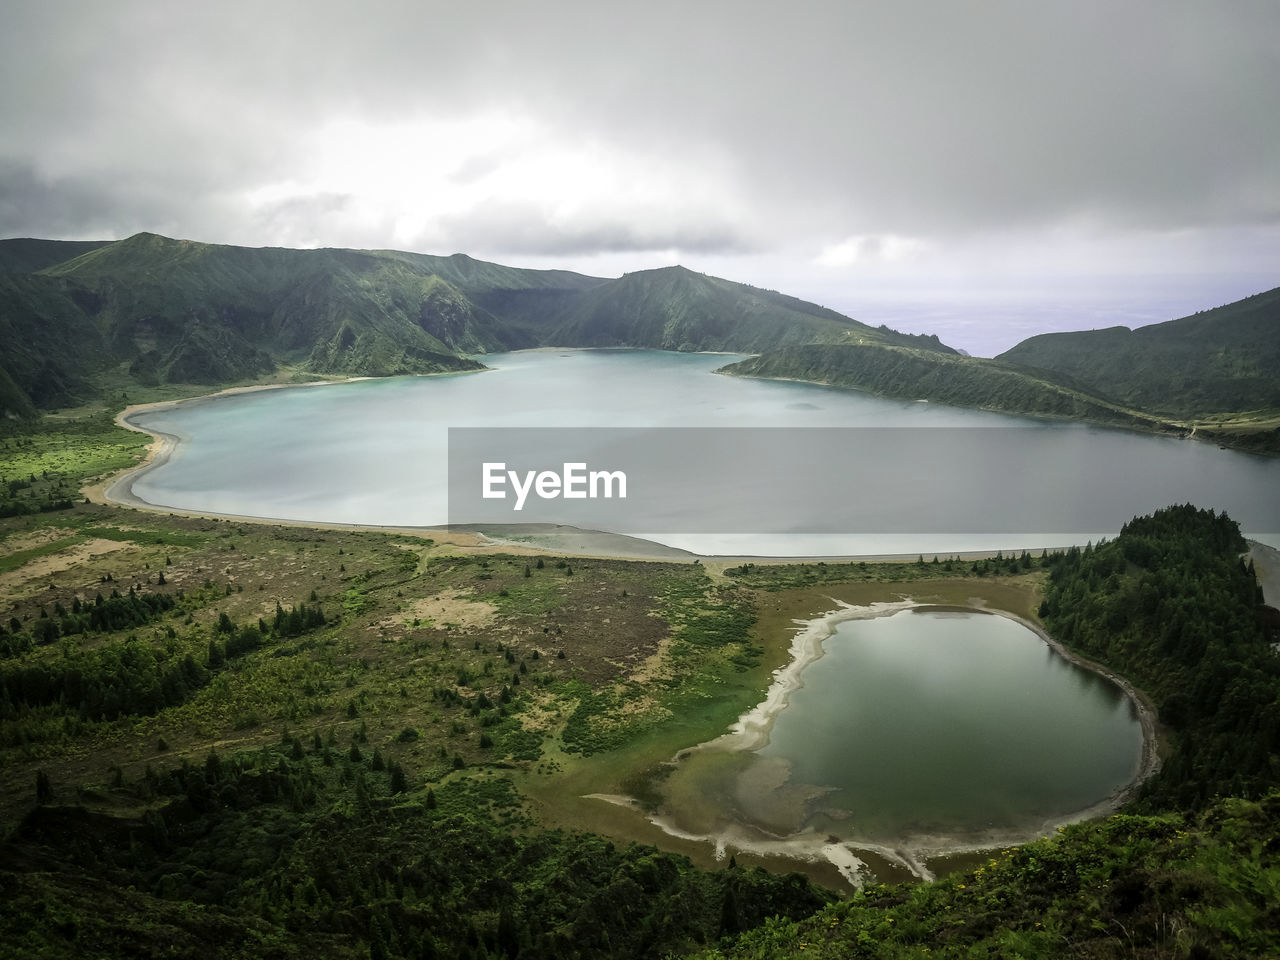 scenics - nature, water, cloud - sky, beauty in nature, sky, tranquil scene, tranquility, mountain, environment, nature, non-urban scene, lake, no people, idyllic, landscape, day, land, mountain range, outdoors, volcanic crater, lagoon